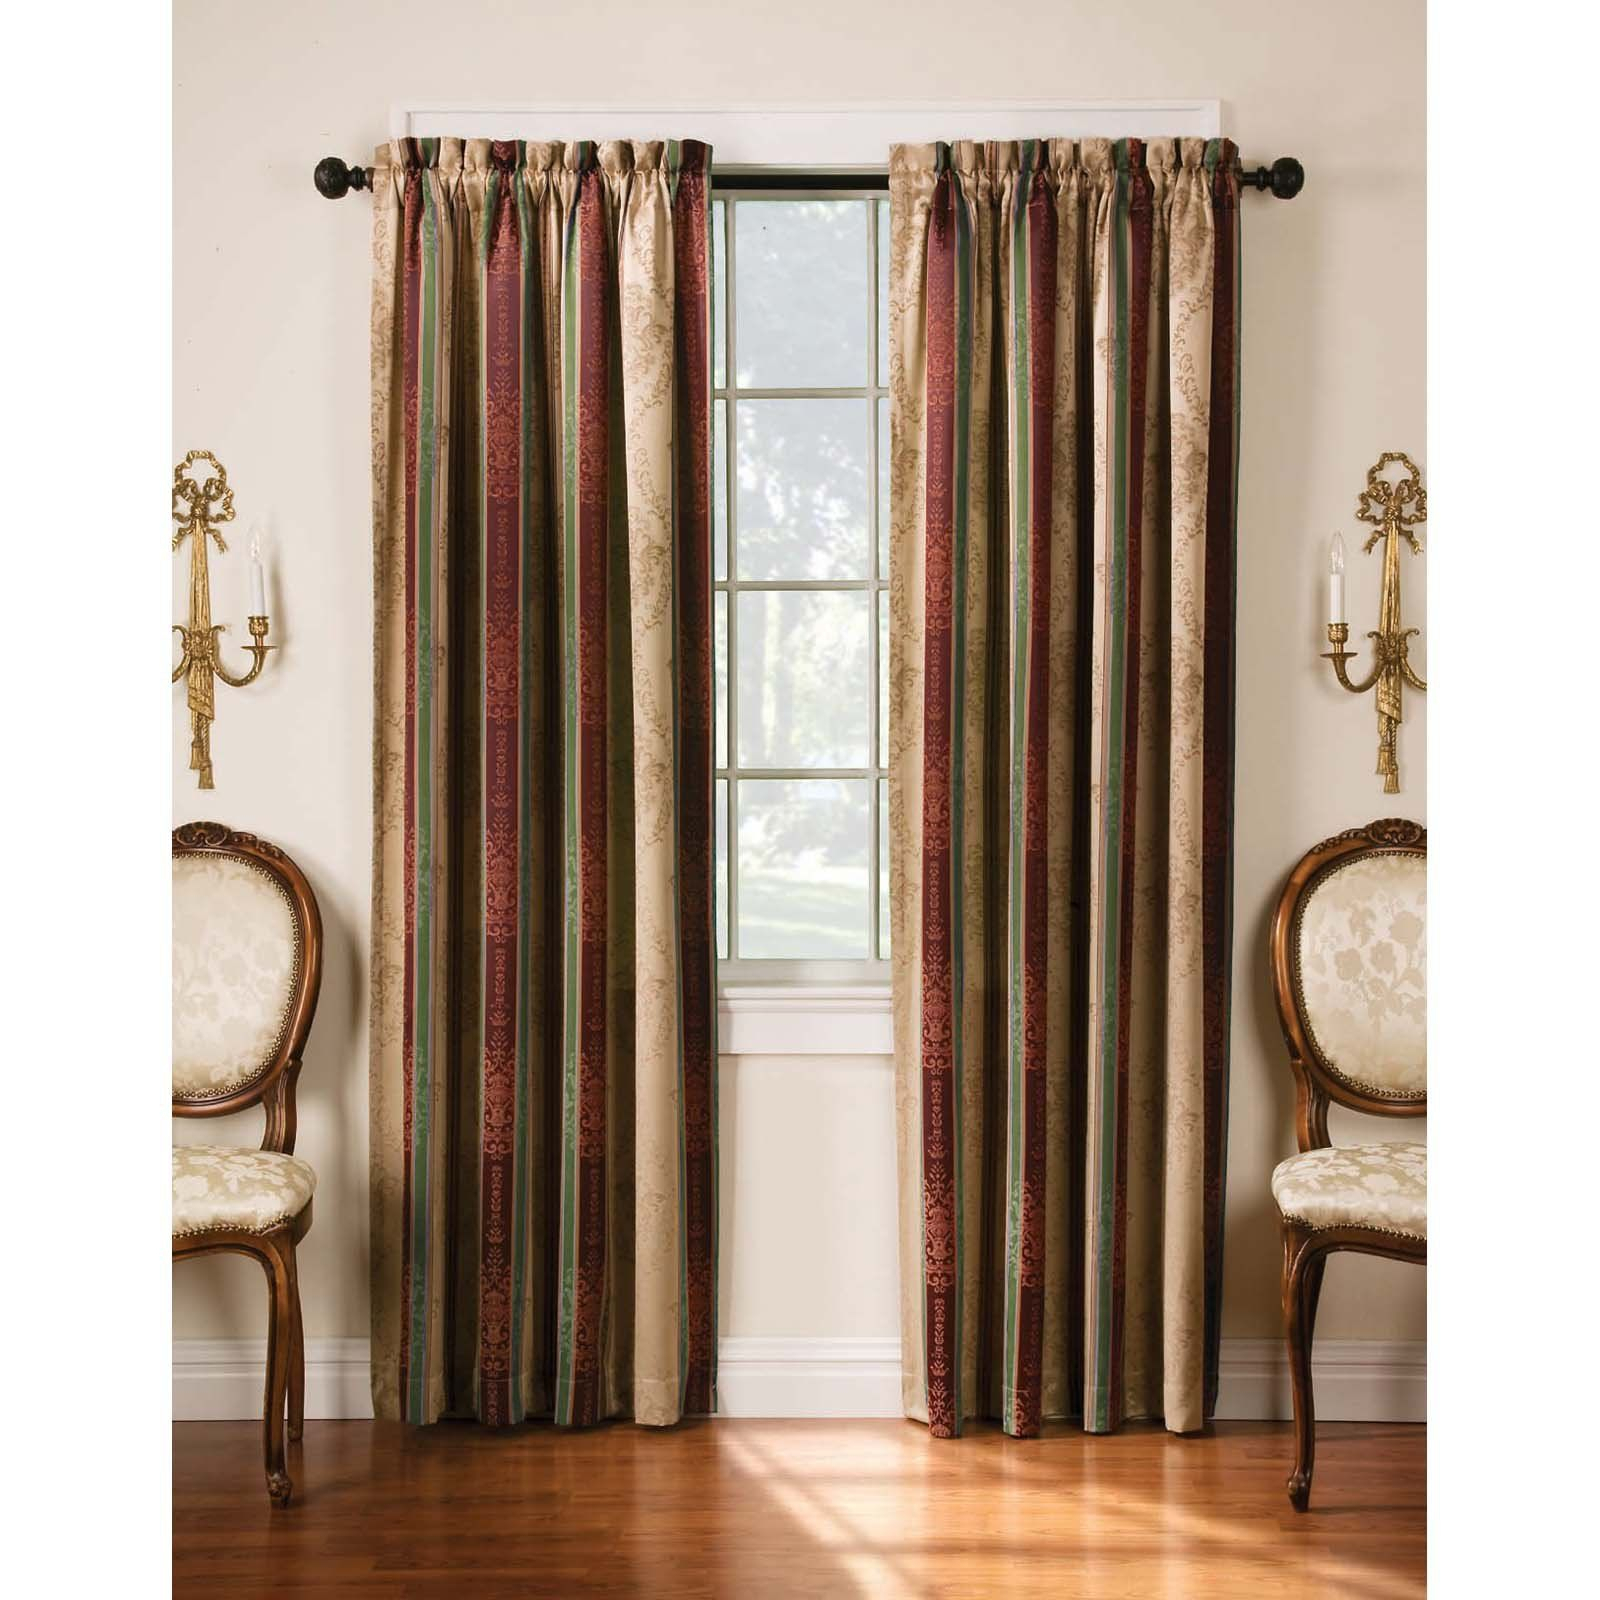 Arlee Home Fashions Tuscan Stripe Jacquard Blackout Panel Within Julia Striped Room Darkening Window Curtain Panel Pairs (View 14 of 20)